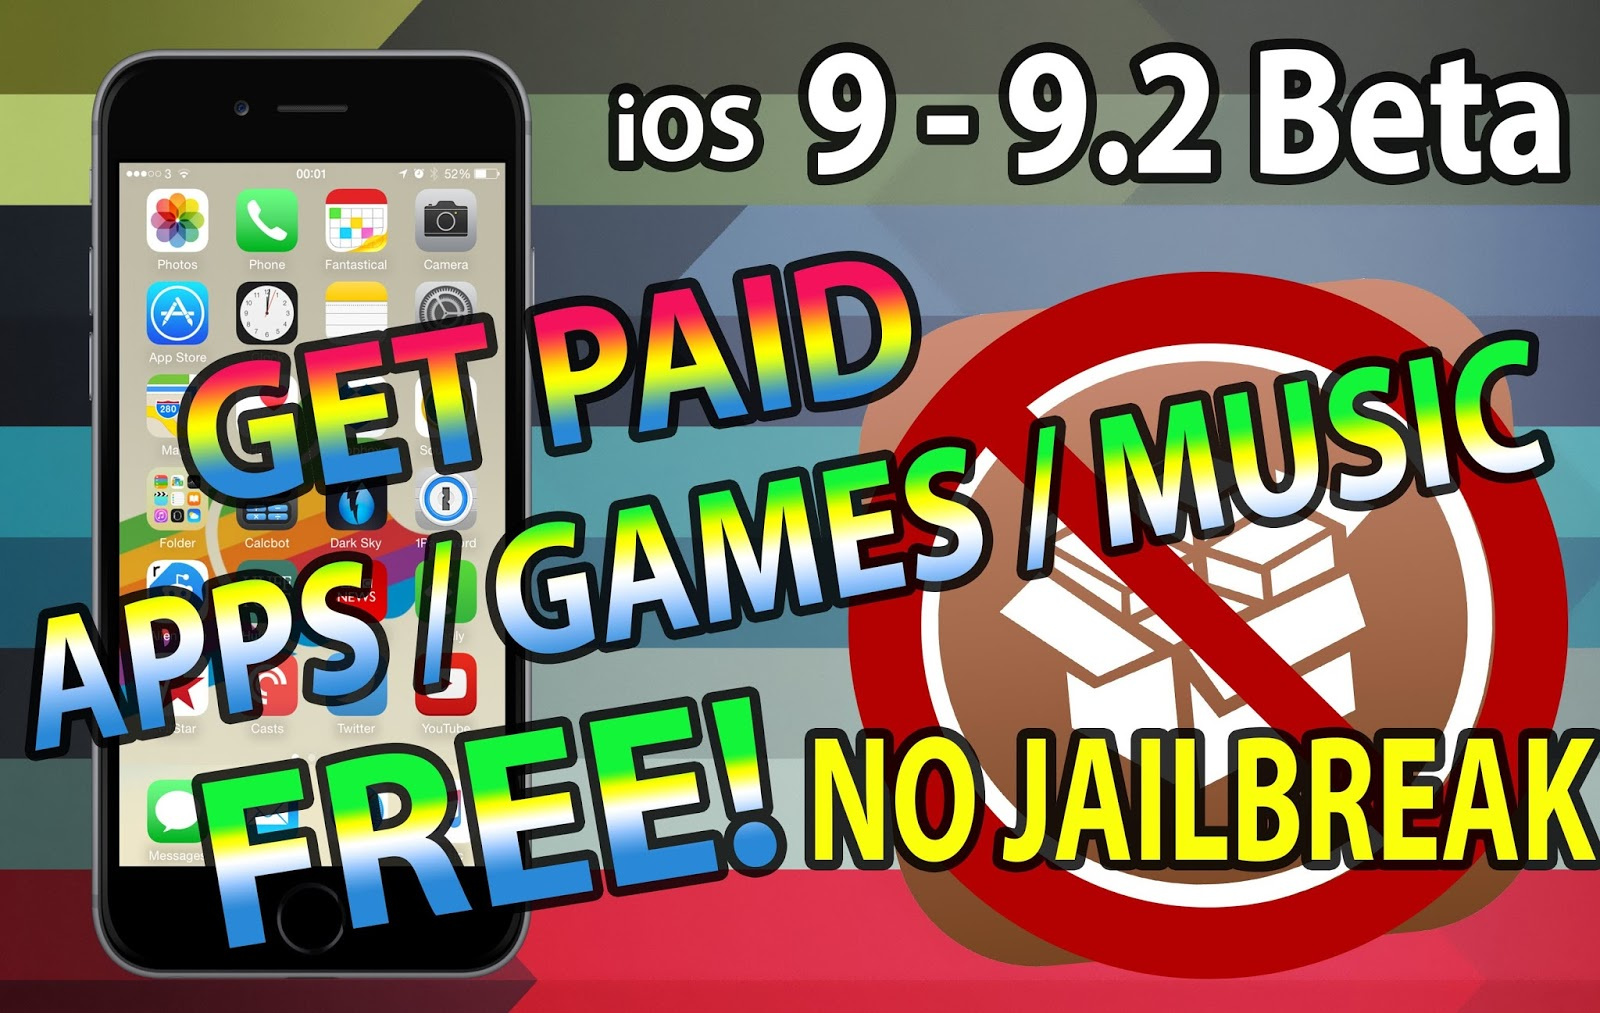 how to get paid ios apps for free without jailbreak